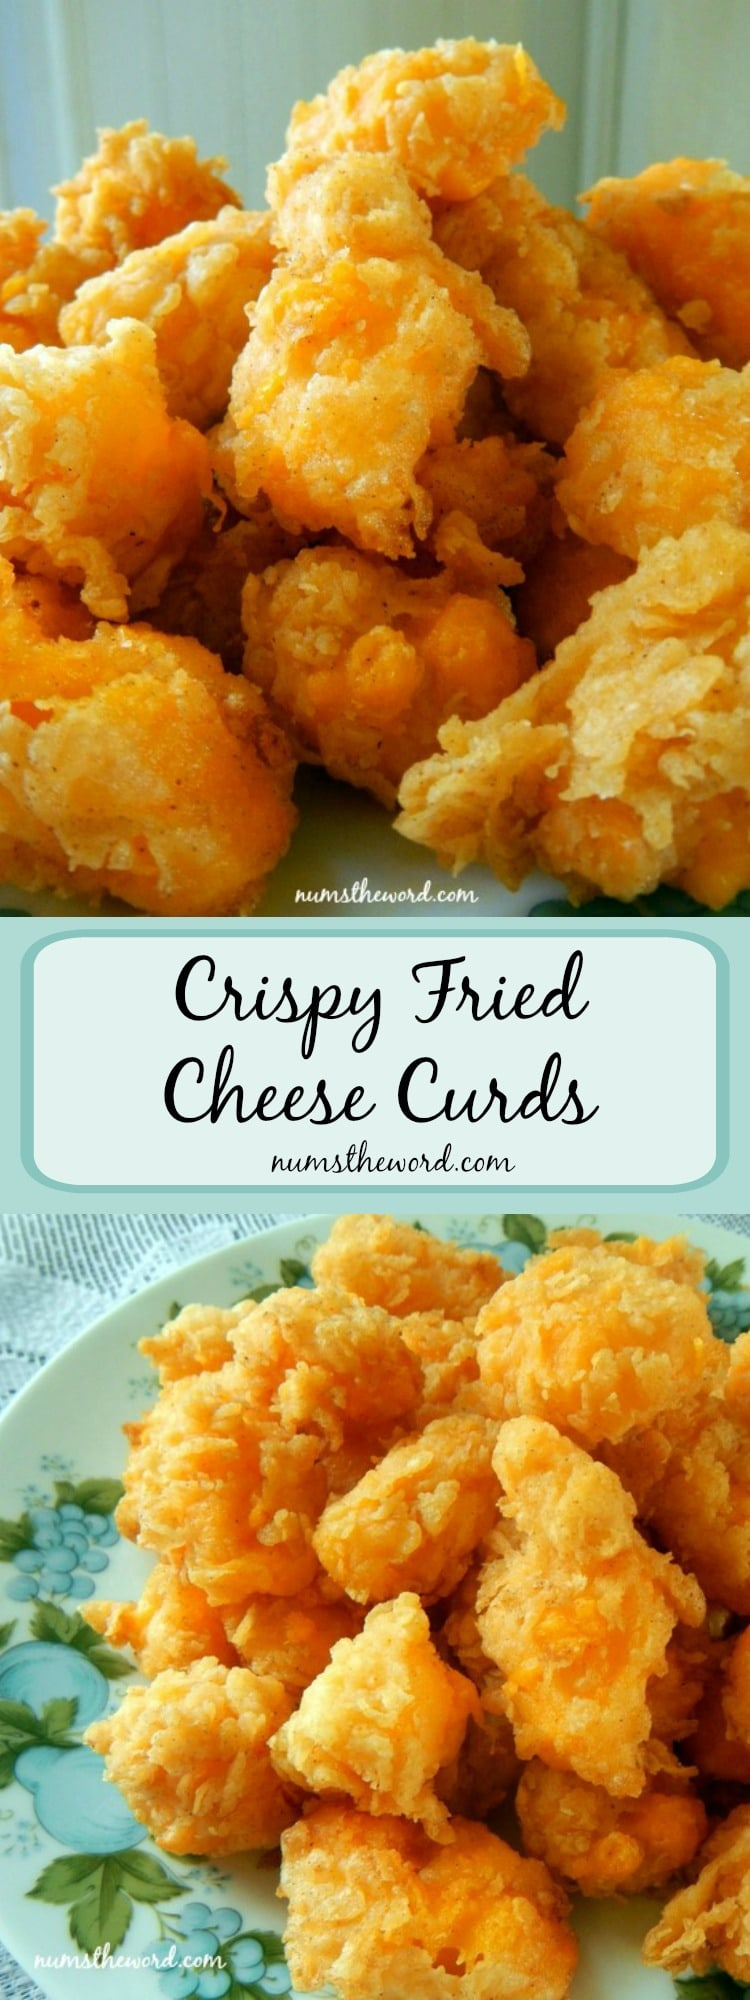 Crispy Fried Cheese Curds LONG